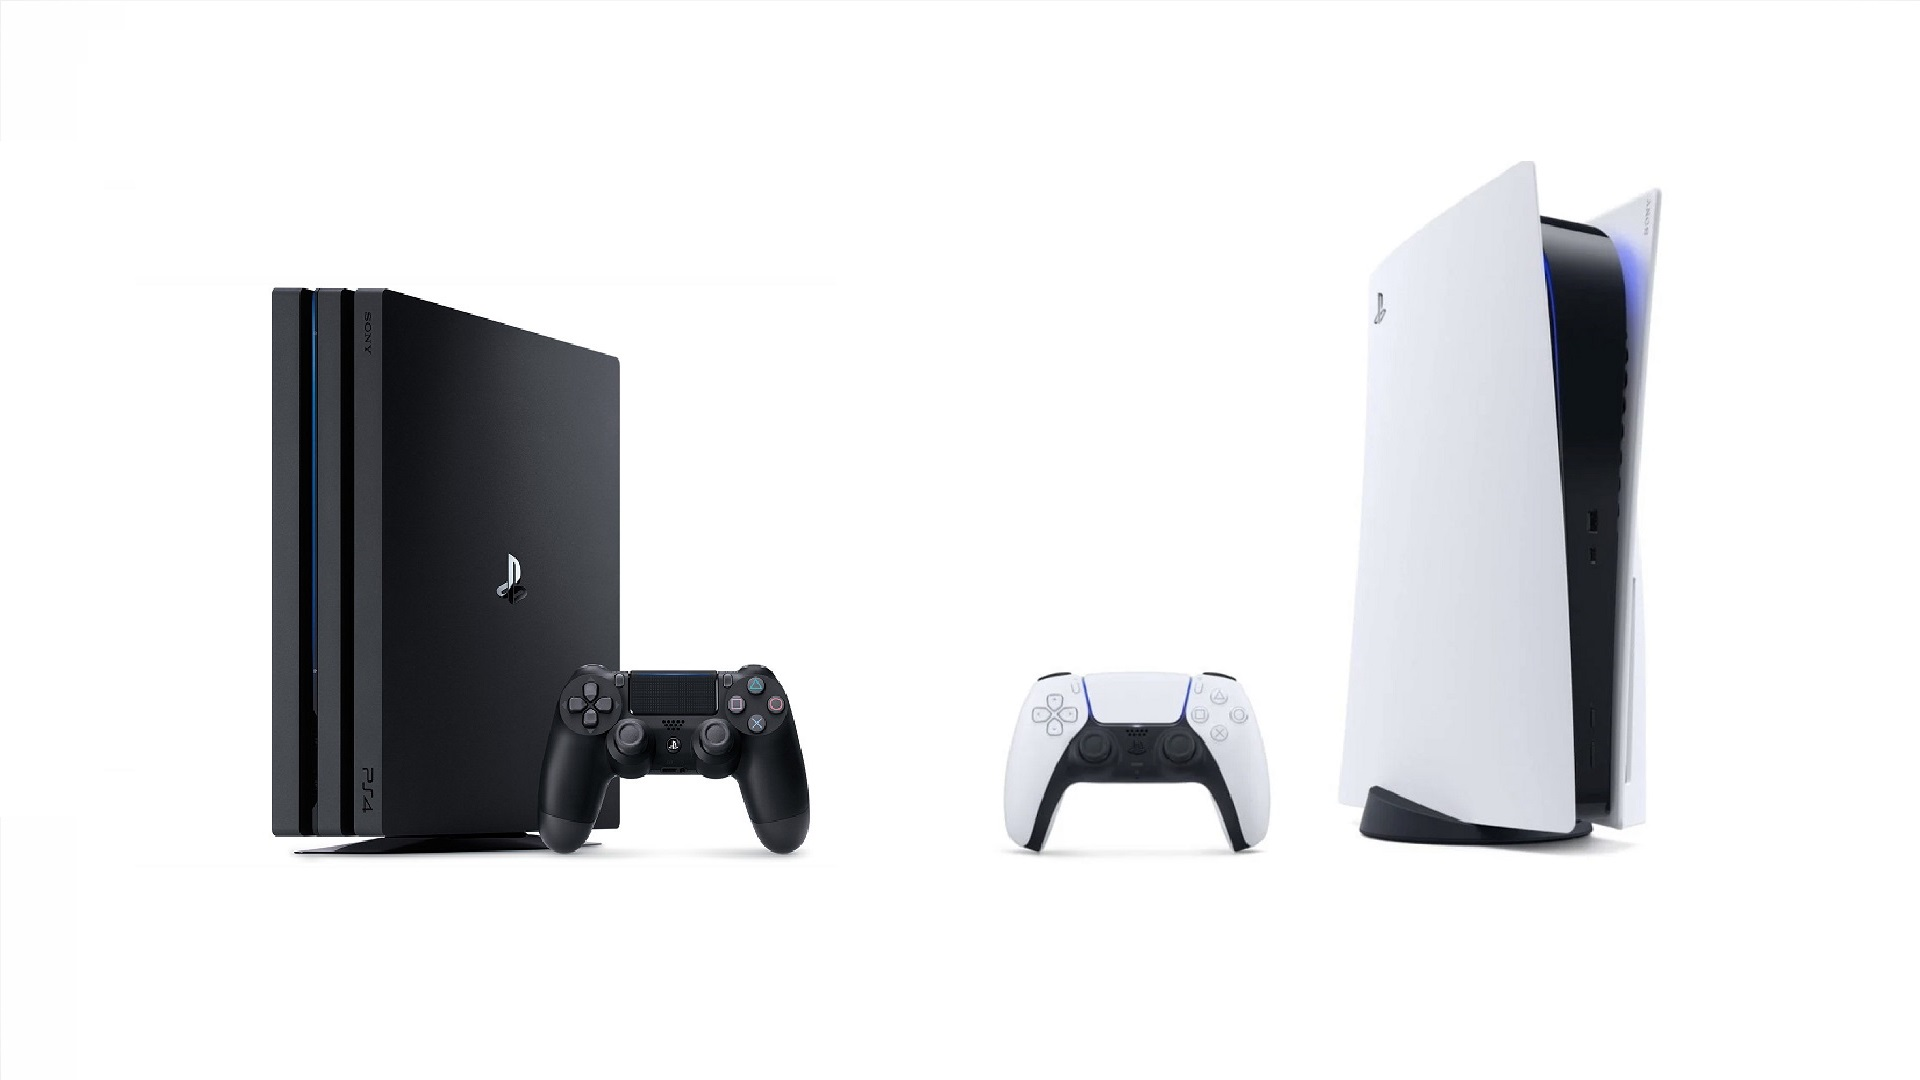 ps4 and ps5